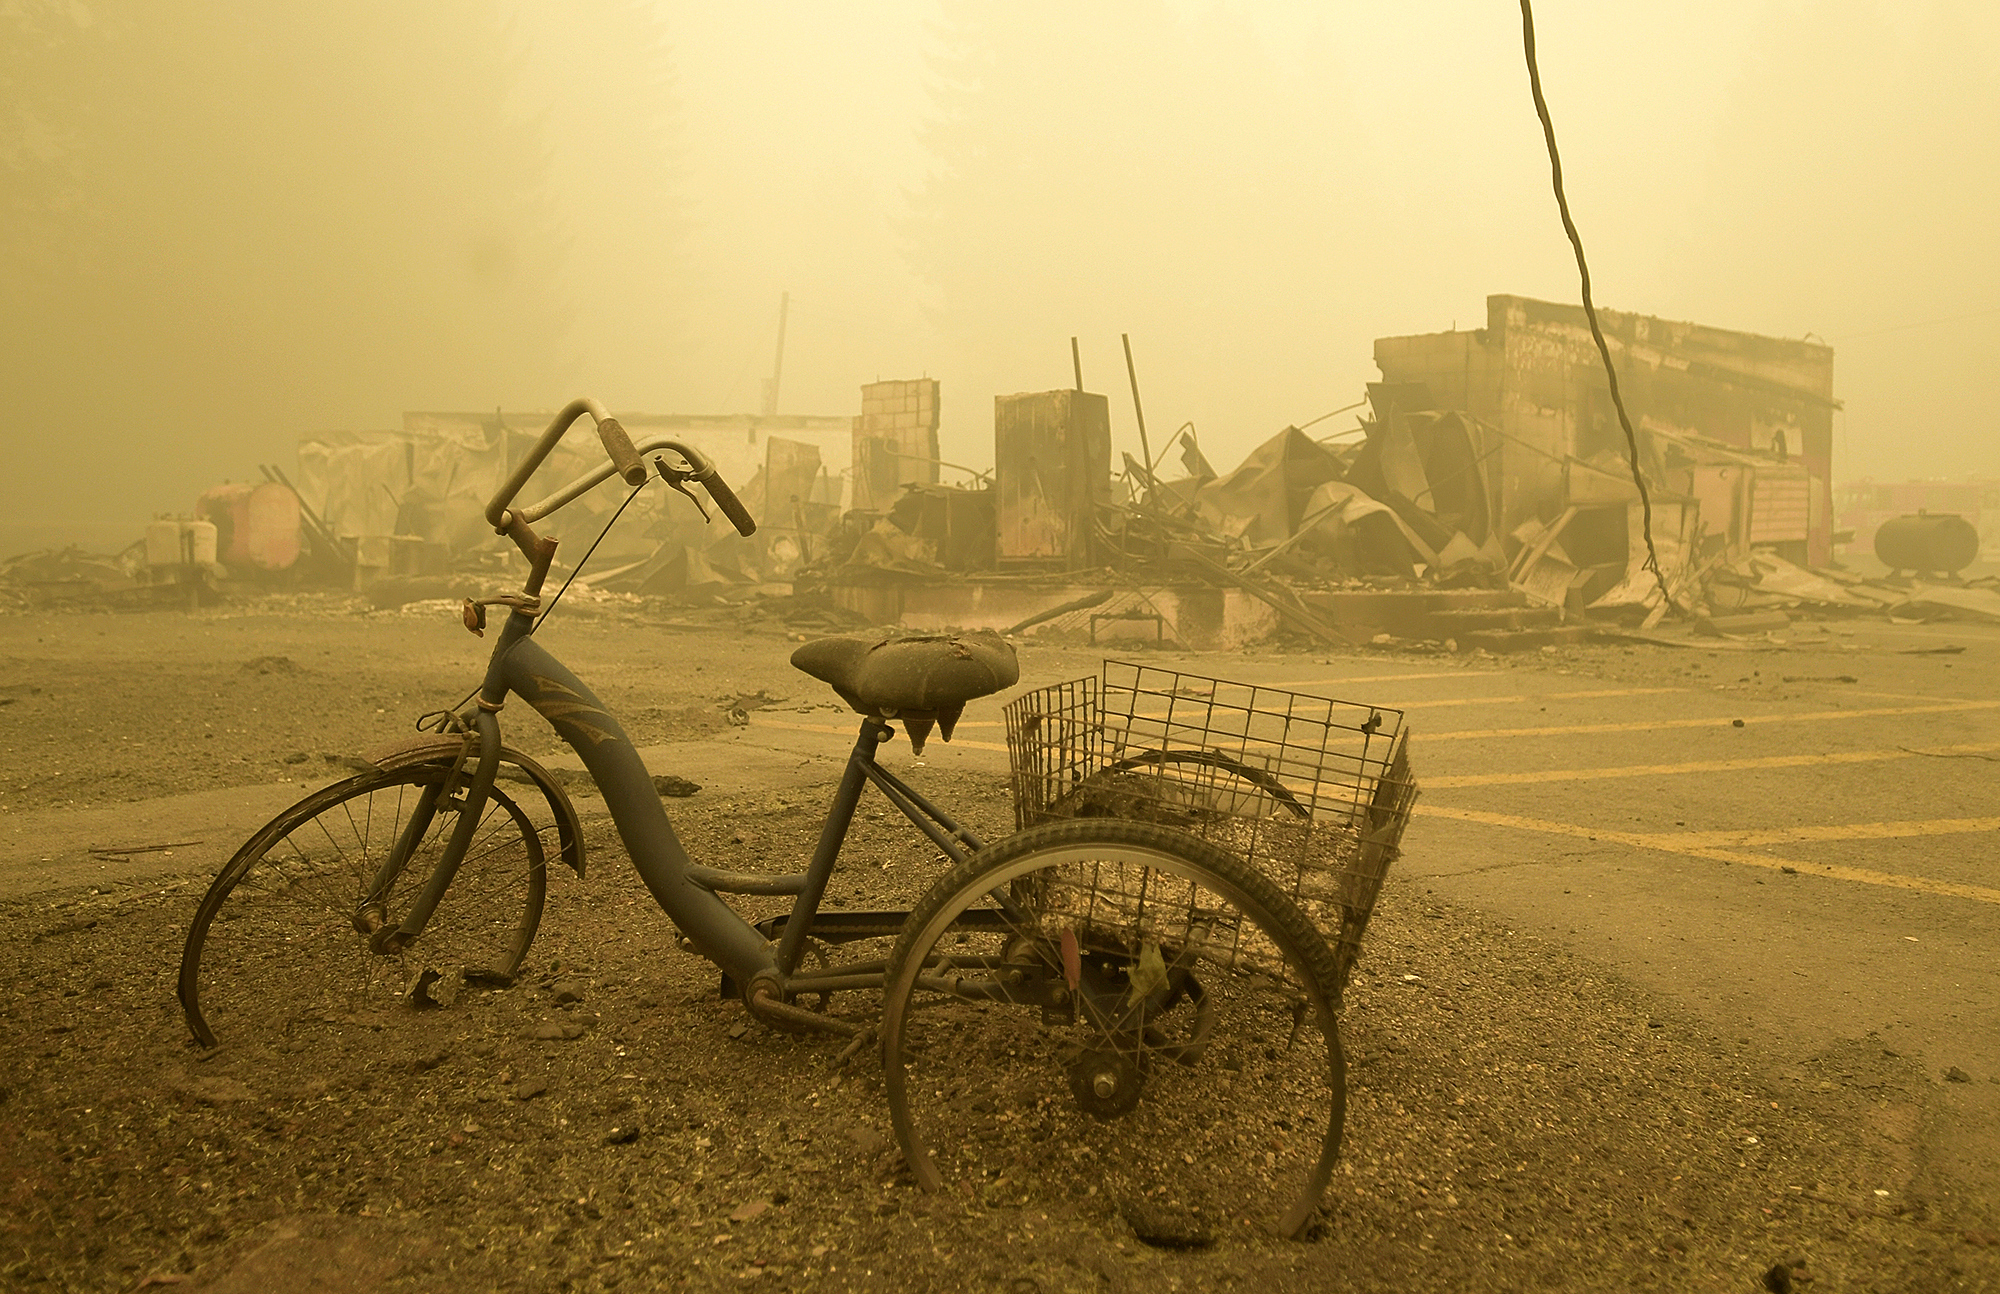 In this Sept. 11, 2020 file photo, a trike stands near the burnt remains of a building destroyed by a wildfire near the Lake Detroit Market in Detroit, Ore. The blaze was one of multiple fires that burned across the state last month. Three Pacific Northwest law firms have filed a class action lawsuit against Pacific Power and its parent company, Portland-based PacifiCorp, alleging that the power company failed to shut down its power lines despite a historic wind event and extremely dangerous wildfire conditions. (Mark Ylen/Albany Democrat-Herald via AP, File)